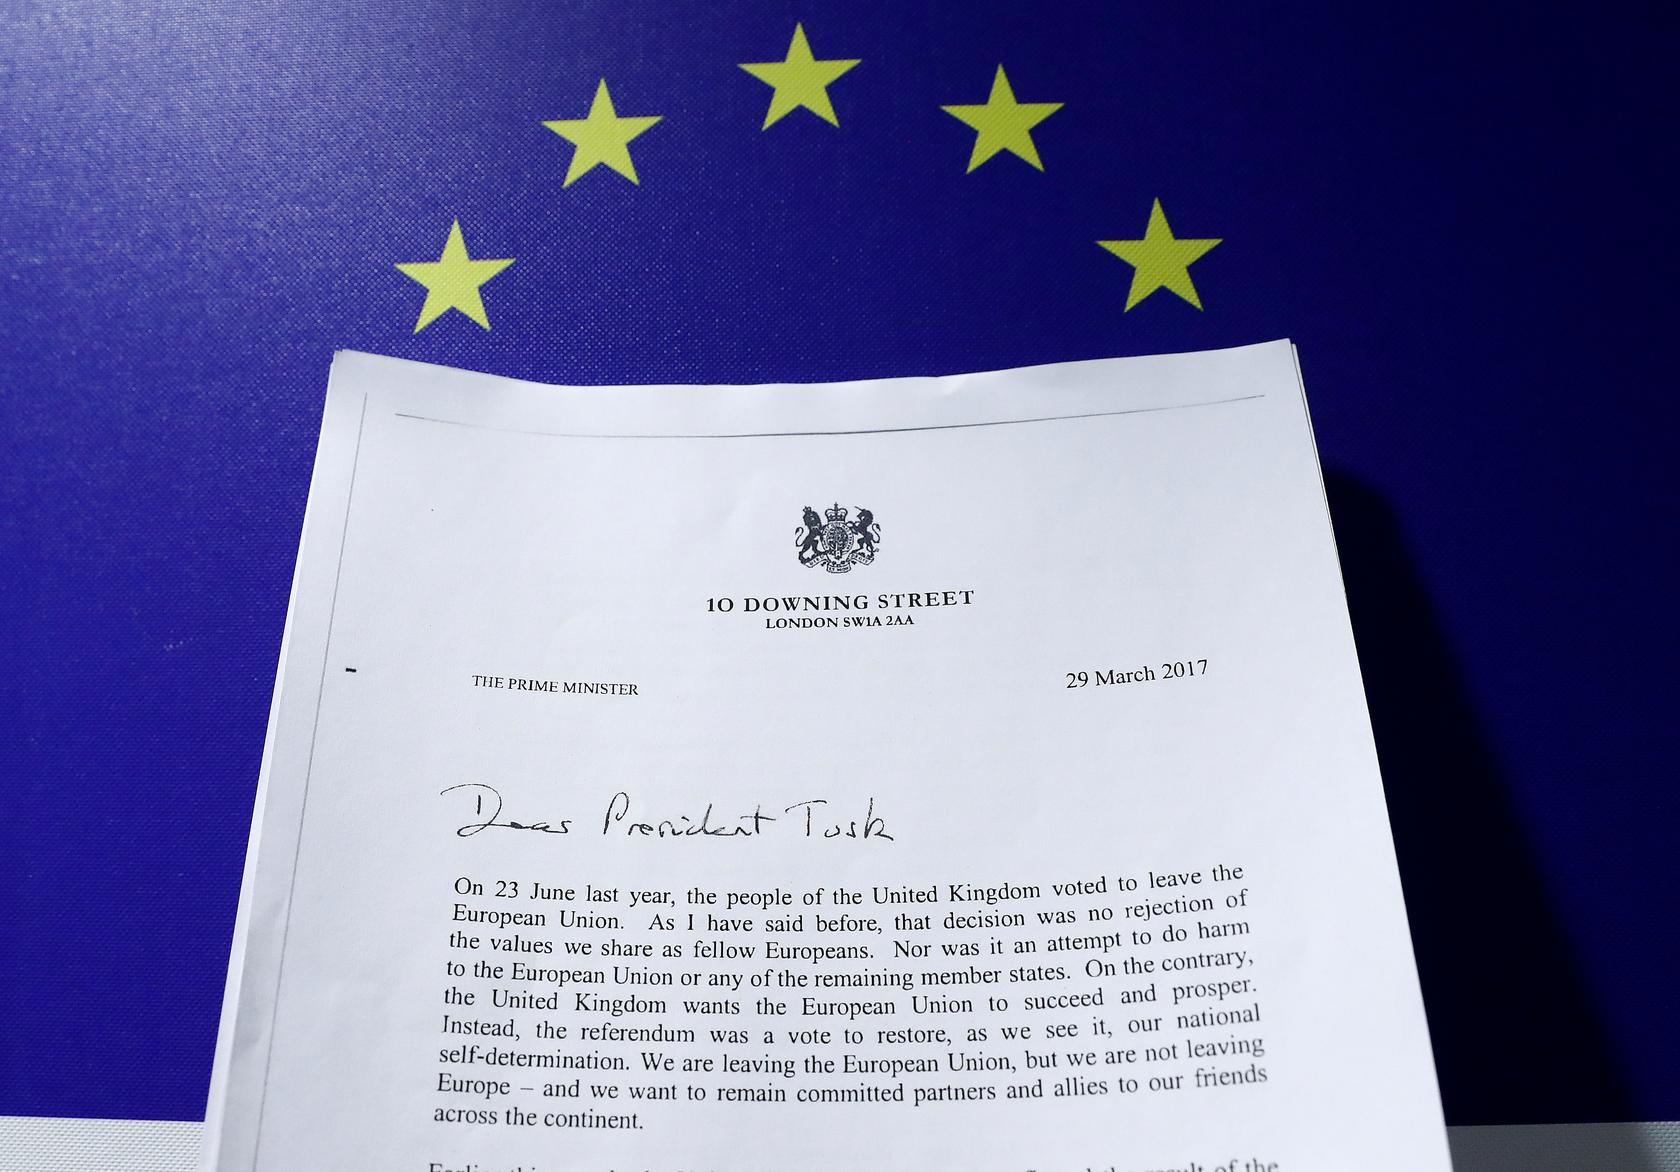 UK has not looked in detail at legal route to revoking Article 50